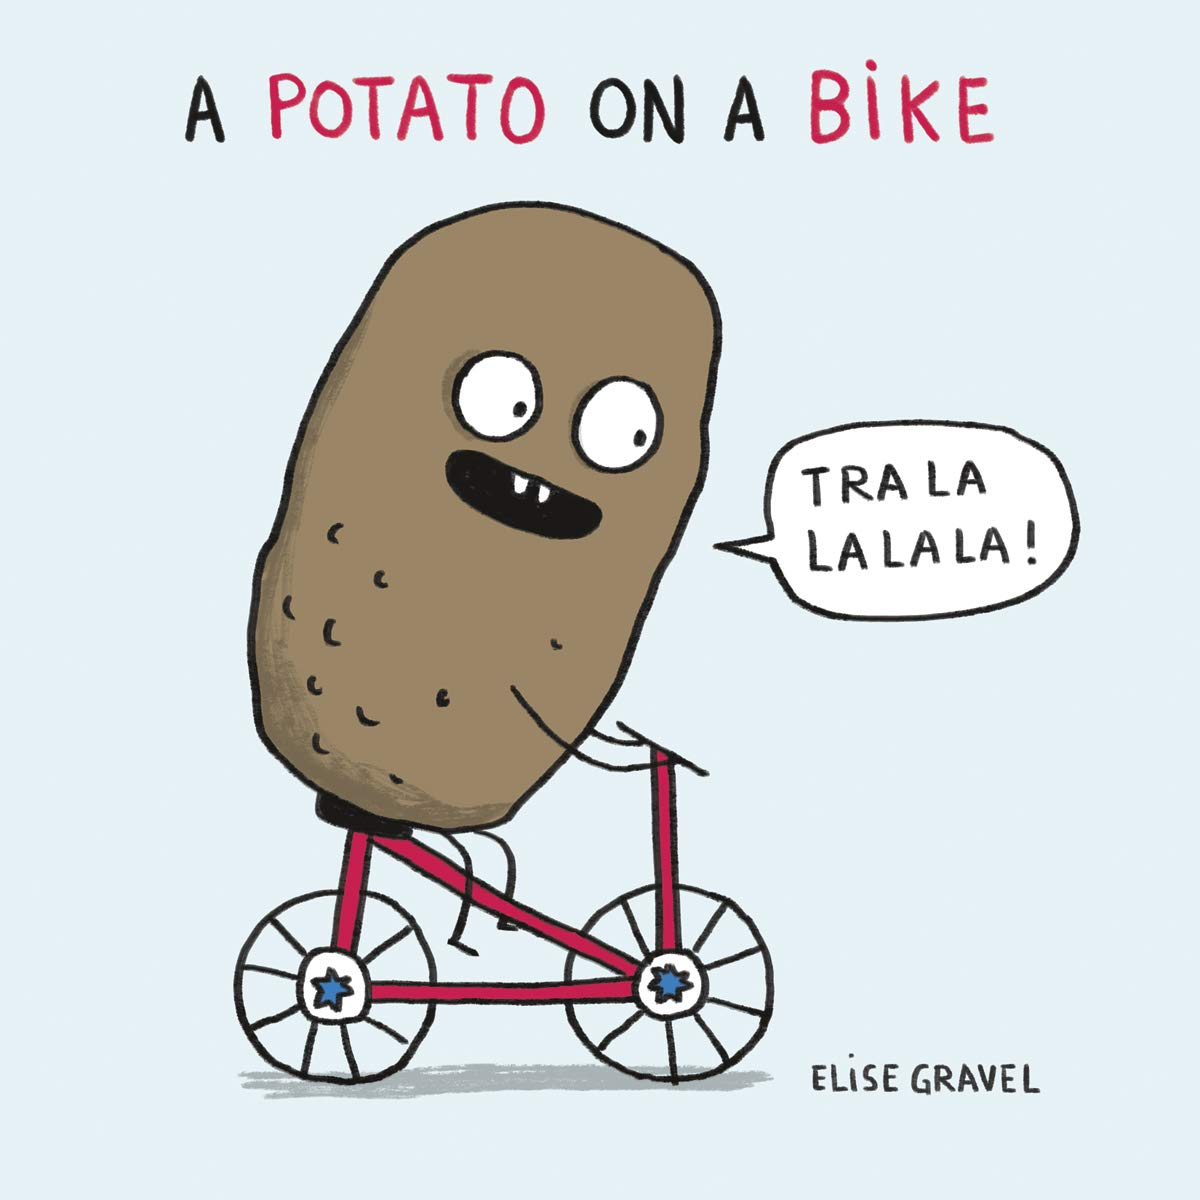 A potato on a bike